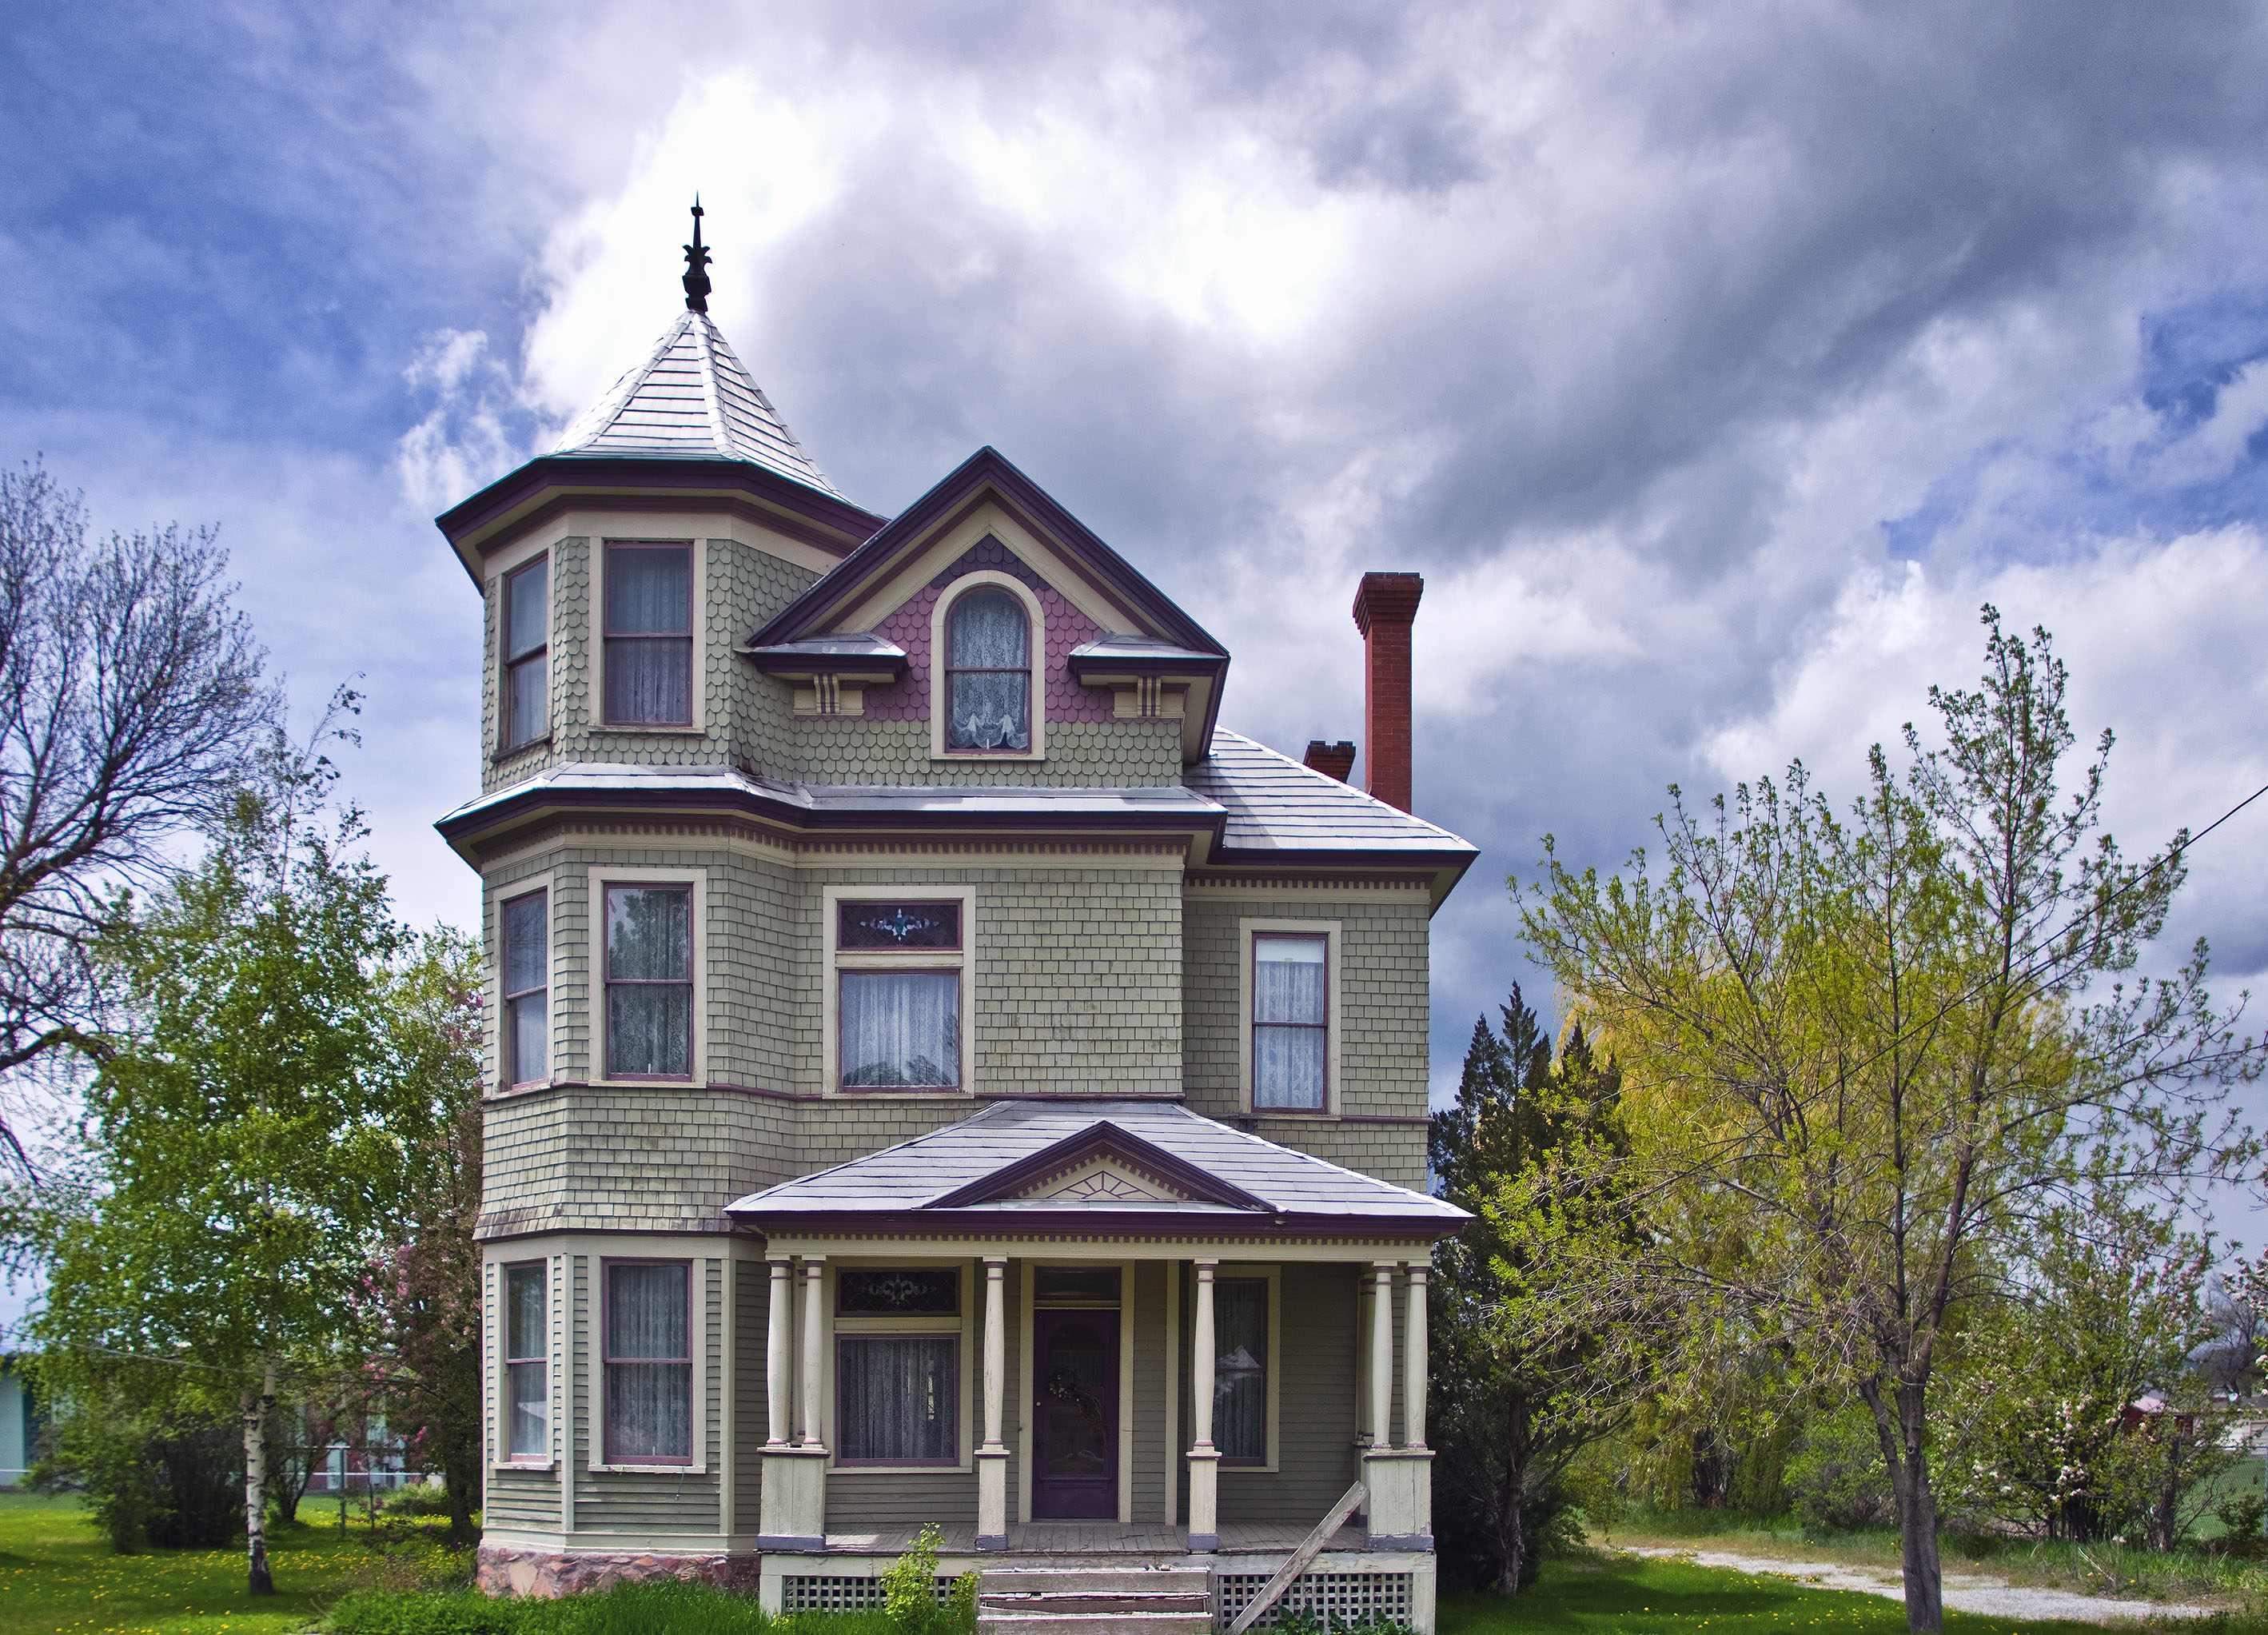 located at 155 North 5th Street in Montpelier, and is on the National Register of Historic Places. Style: Victorian 'Queen Anne' I, the copyright holder